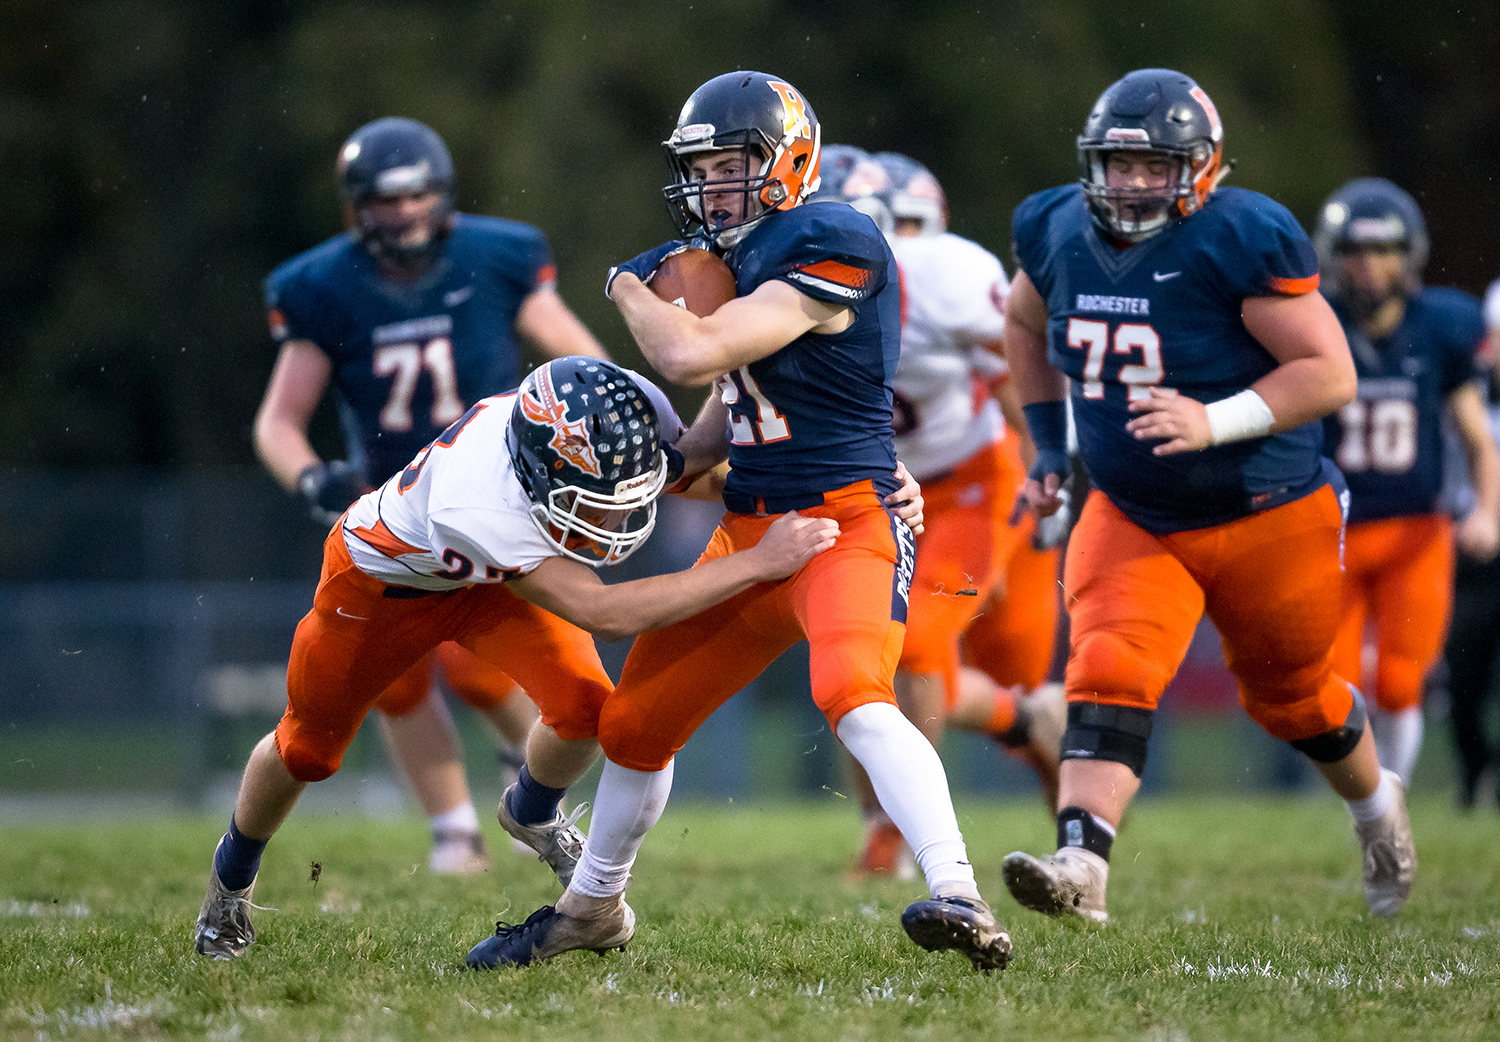 Rochester's David Yoggerst (21) tries to shed a tackle from Pontiac's Nic Hendron (23) on a rush in the first half in the second round of the Class 4A playoffs at Rochester High School, Saturday, Nov. 3, 2018, in Rochester, Ill. [Justin L. Fowler/The State Journal-Register]